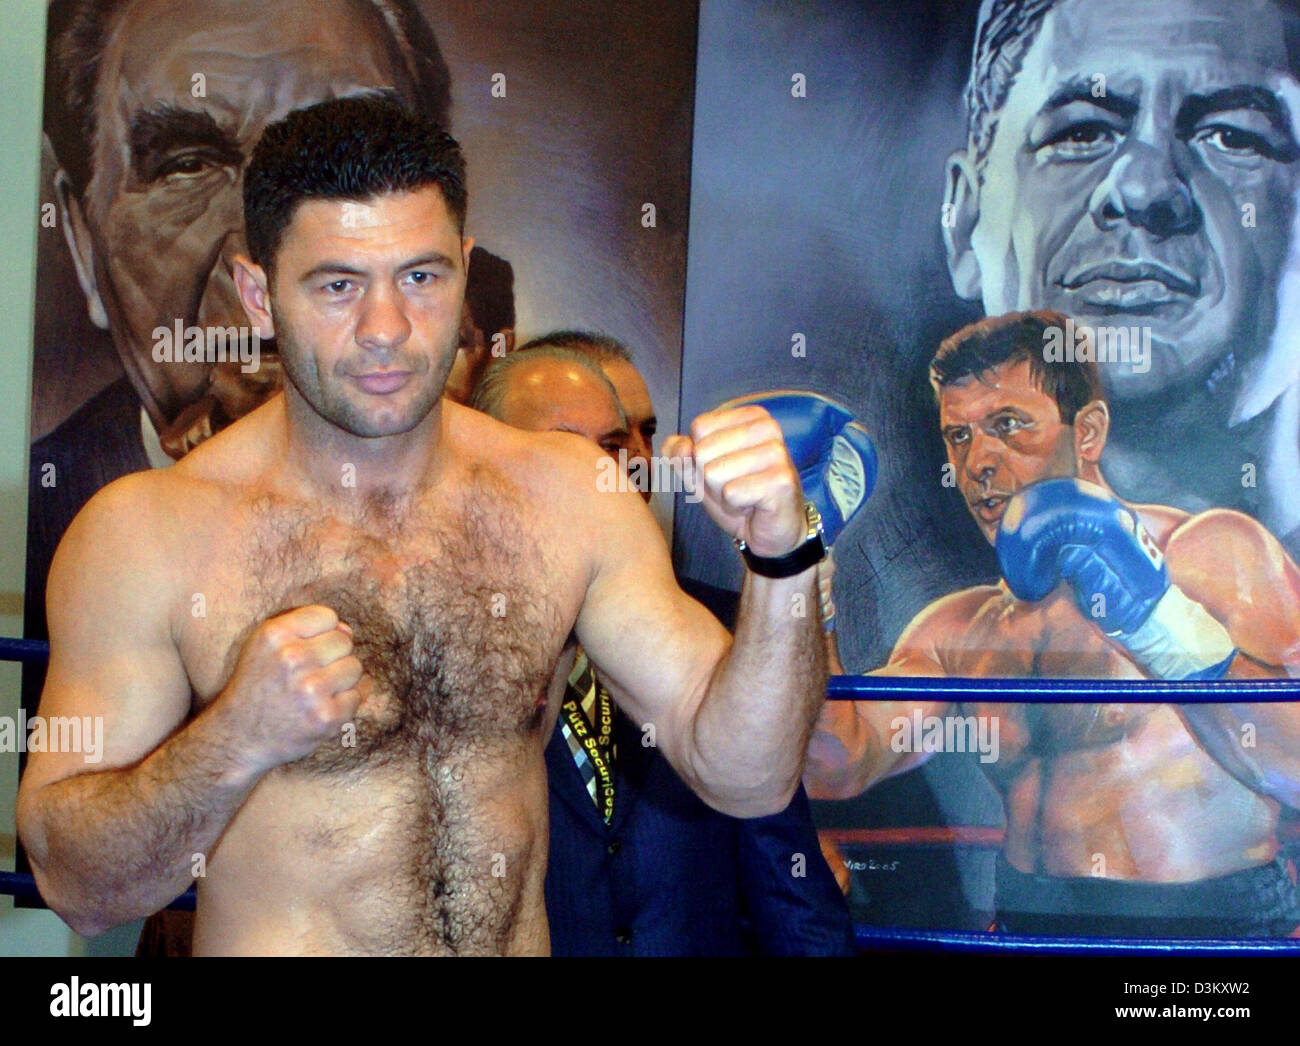 German Heavyweight Luan Krasniqi Heavyweight High Resolution Stock Photography And Images Alamy